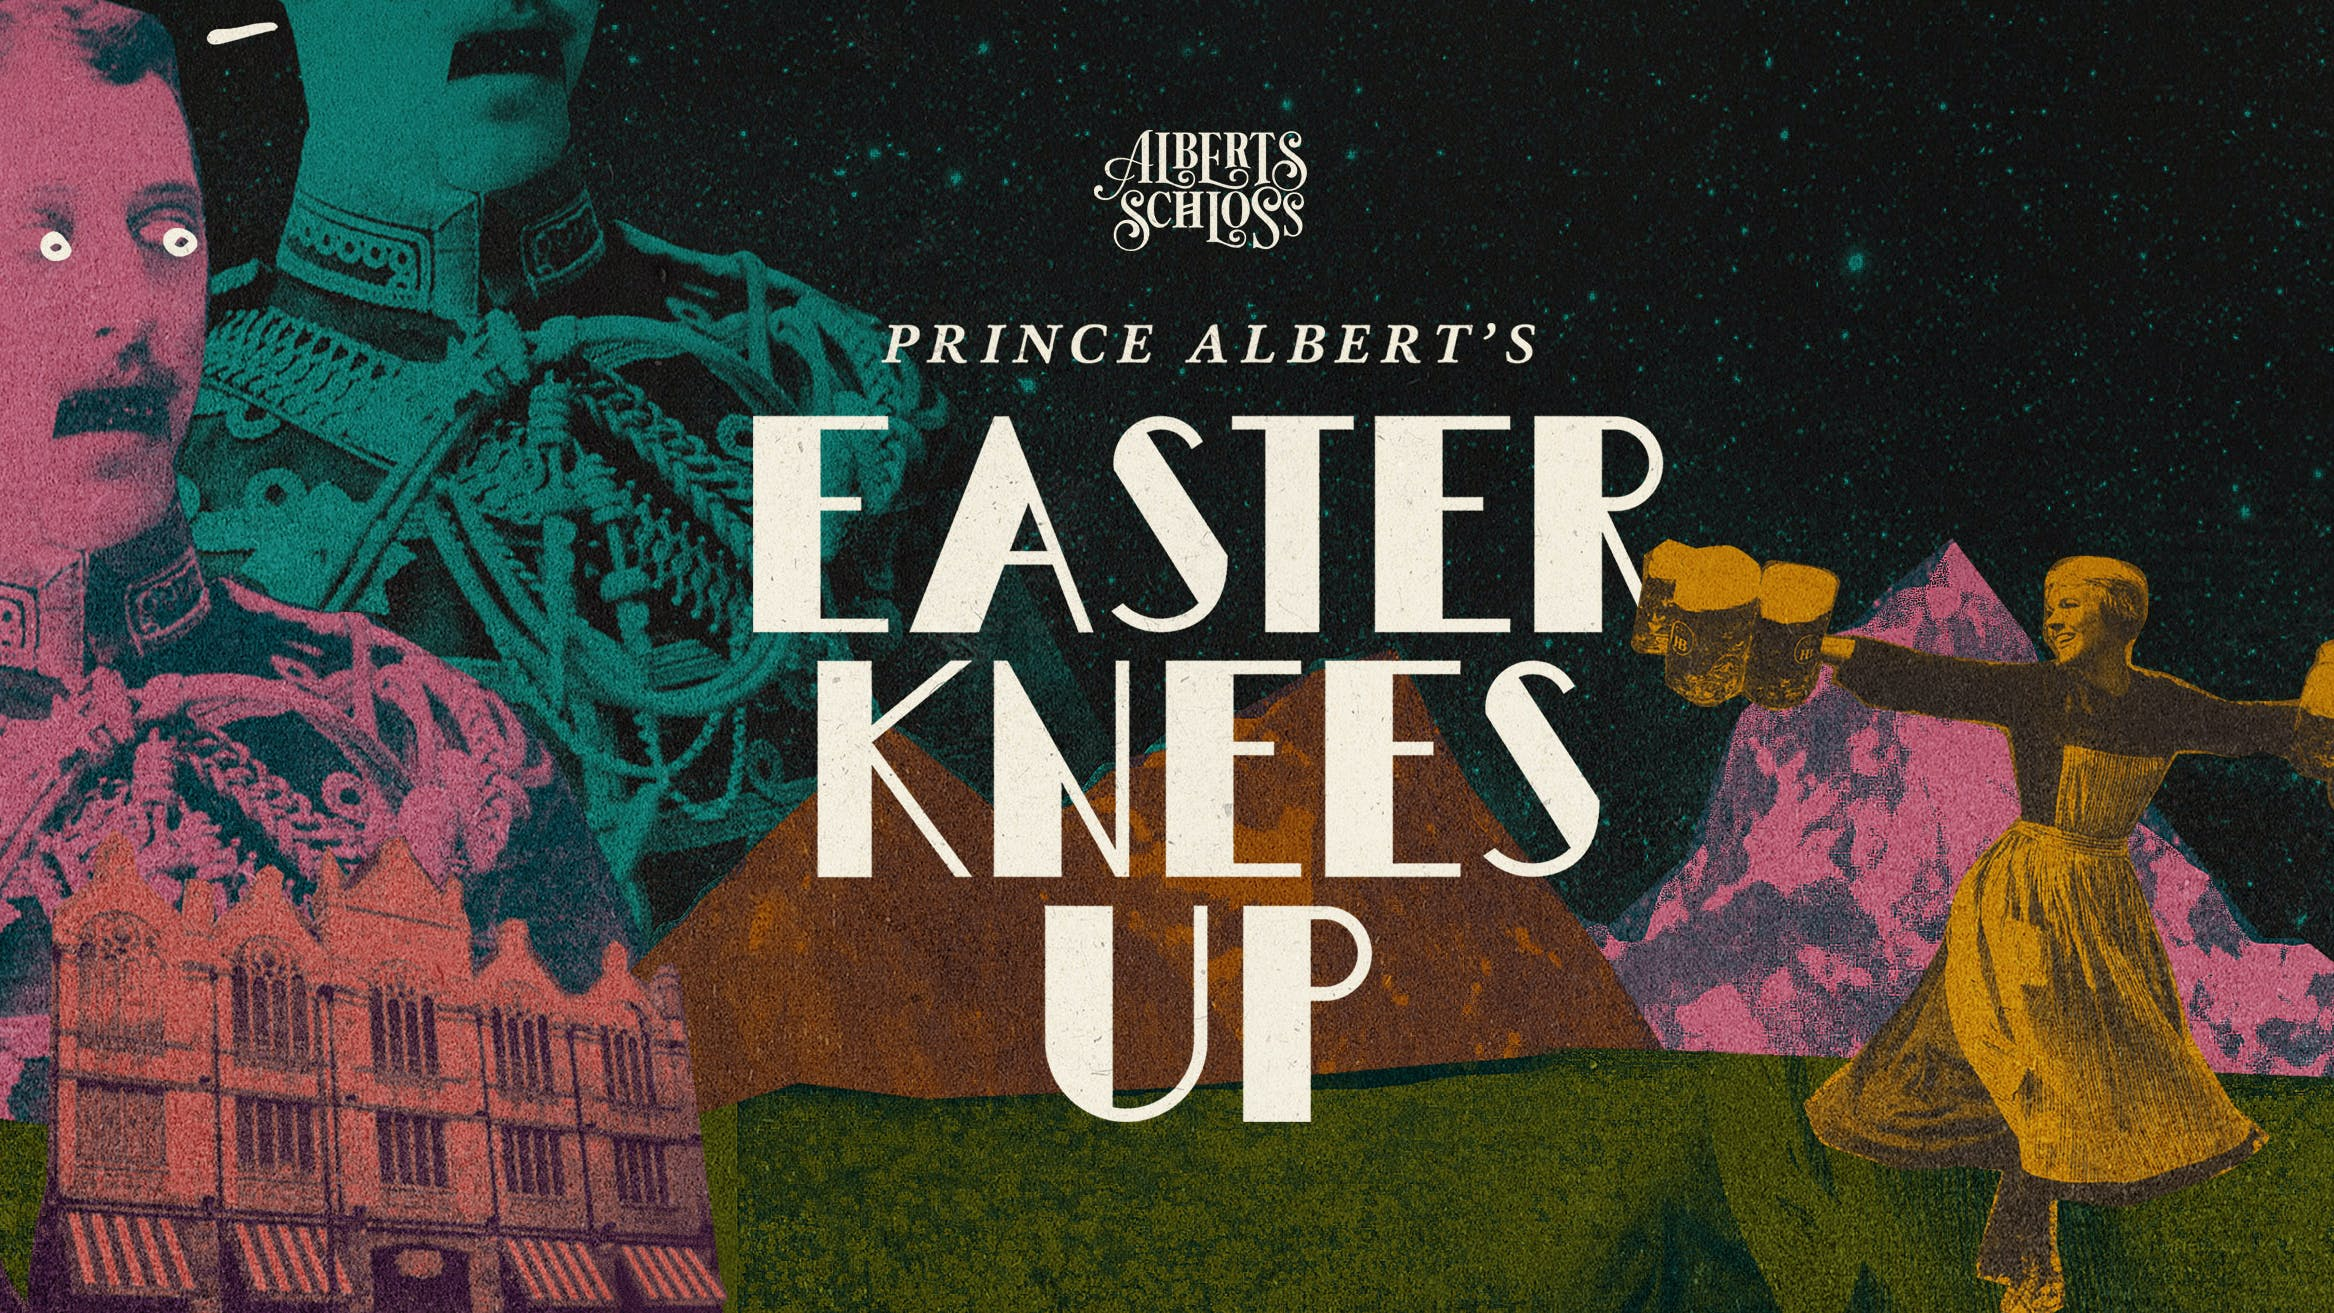 PRINCE ALBERT'S EASTER KNEES UP